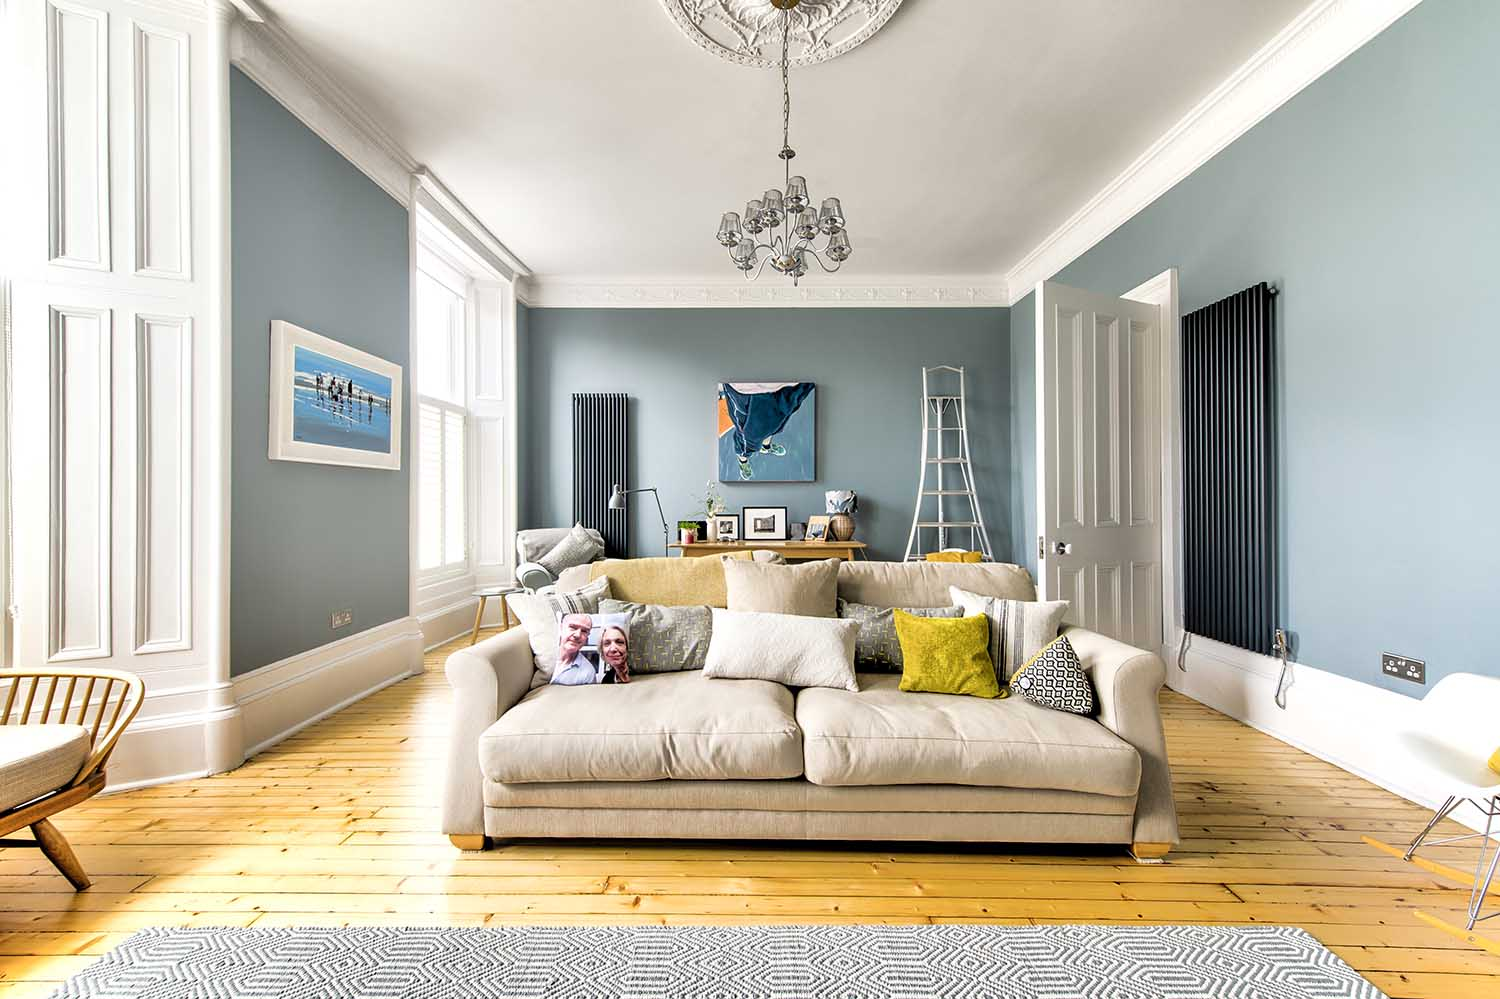 property photographer glasgow